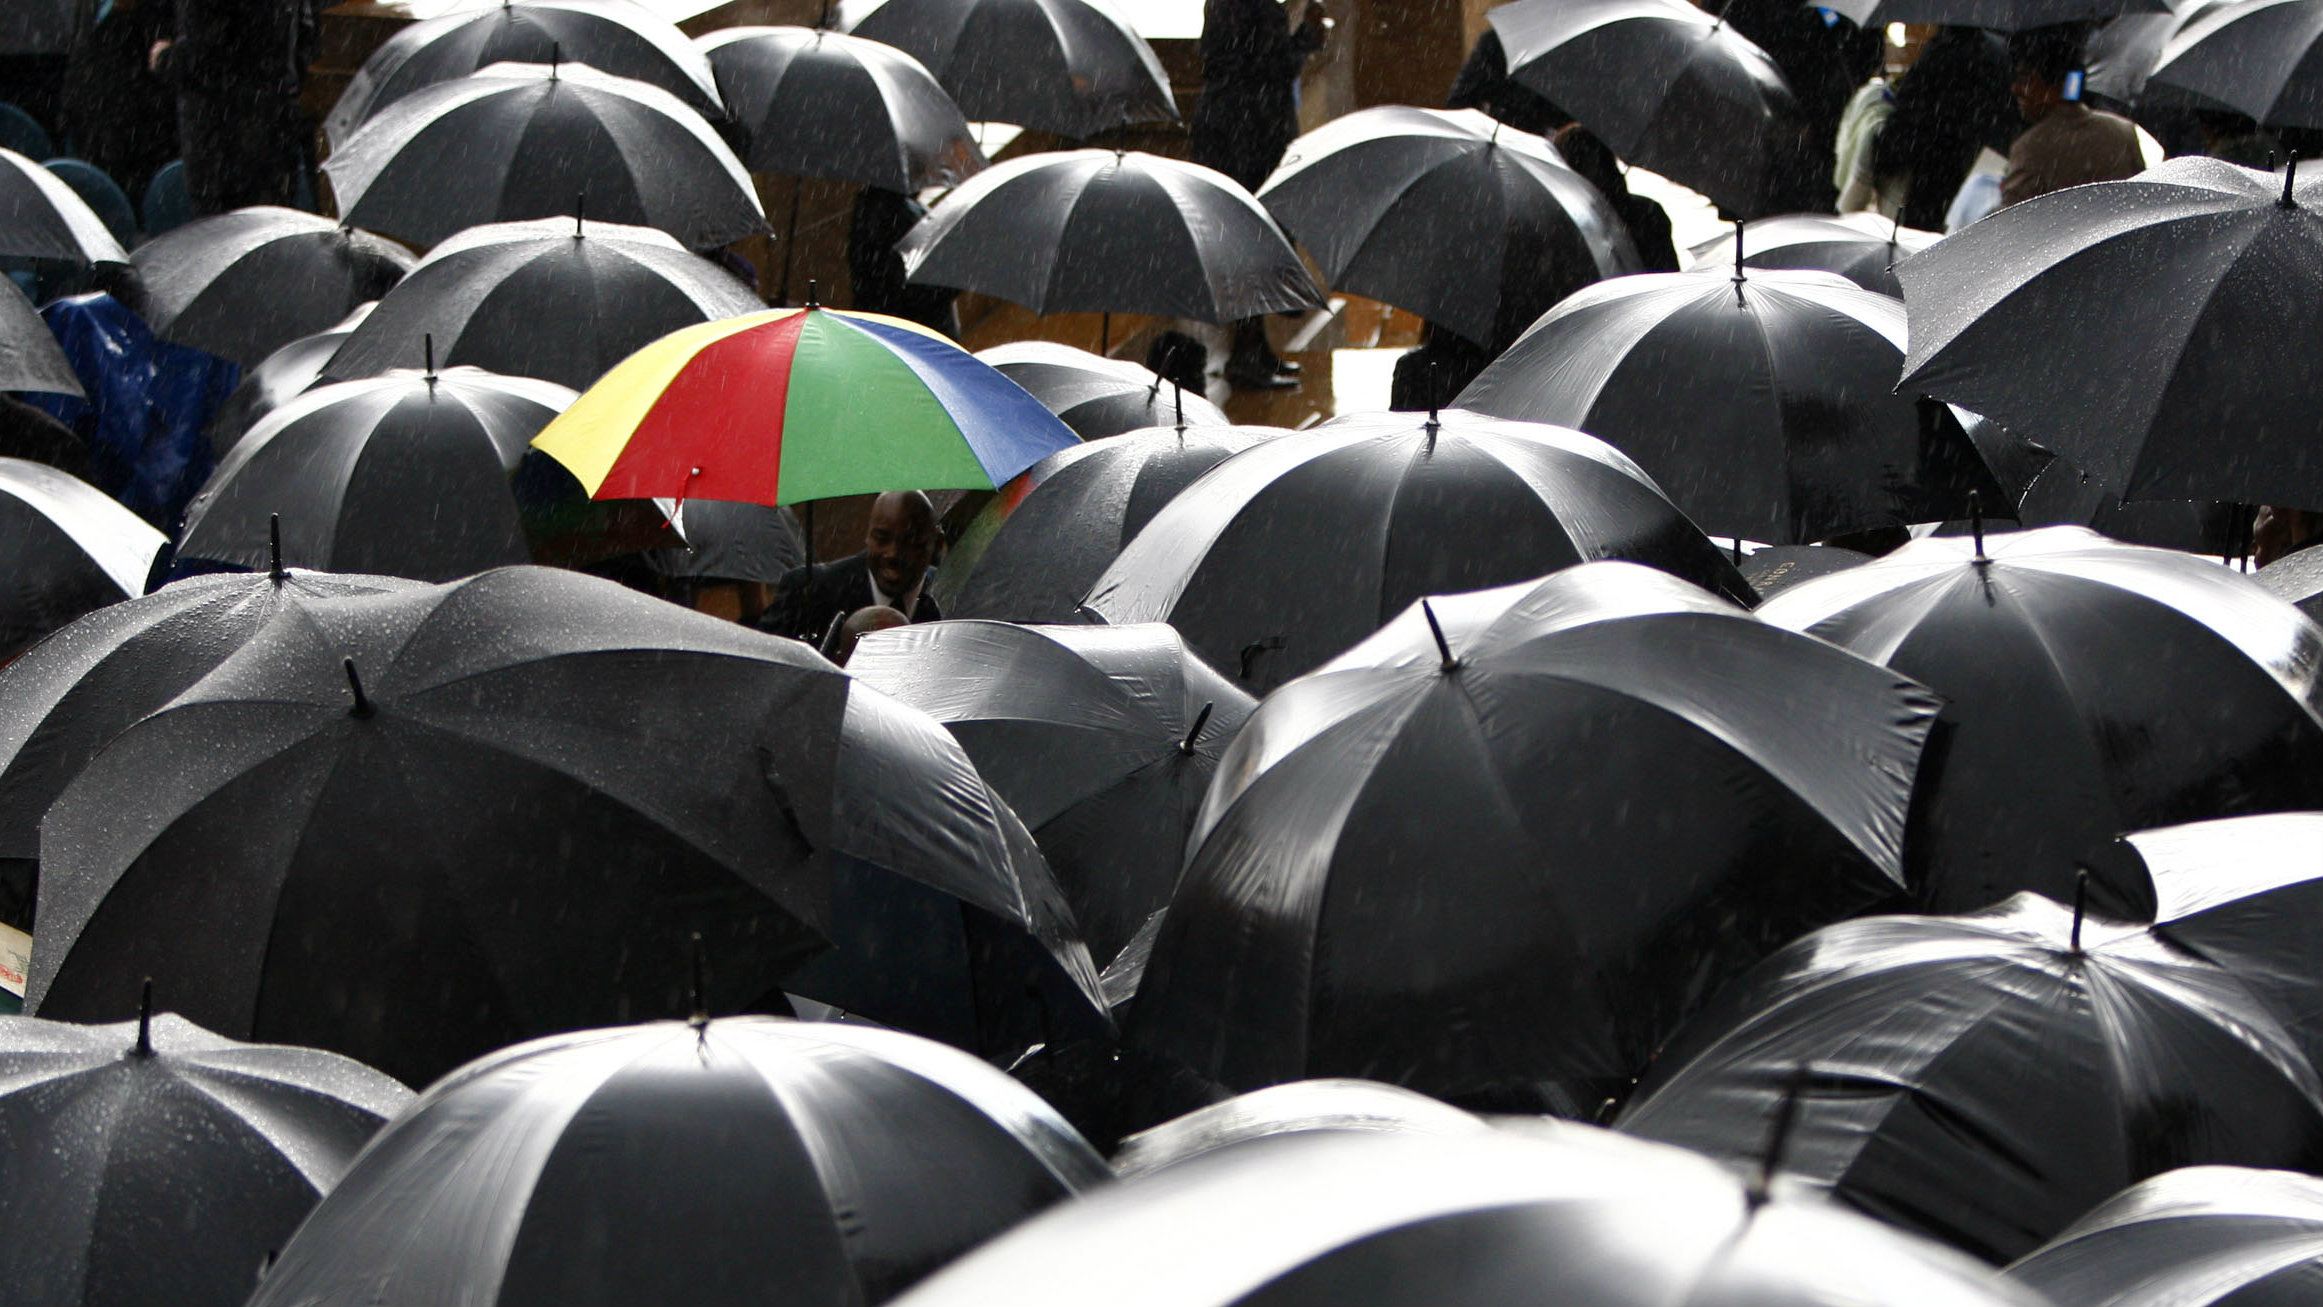 Guests attending President Jacob Zuma's inauguration at the Union Buildings in Pretoria shelter from the rain in South Africa, May 9, 2009. REUTERS/Steve Crisp